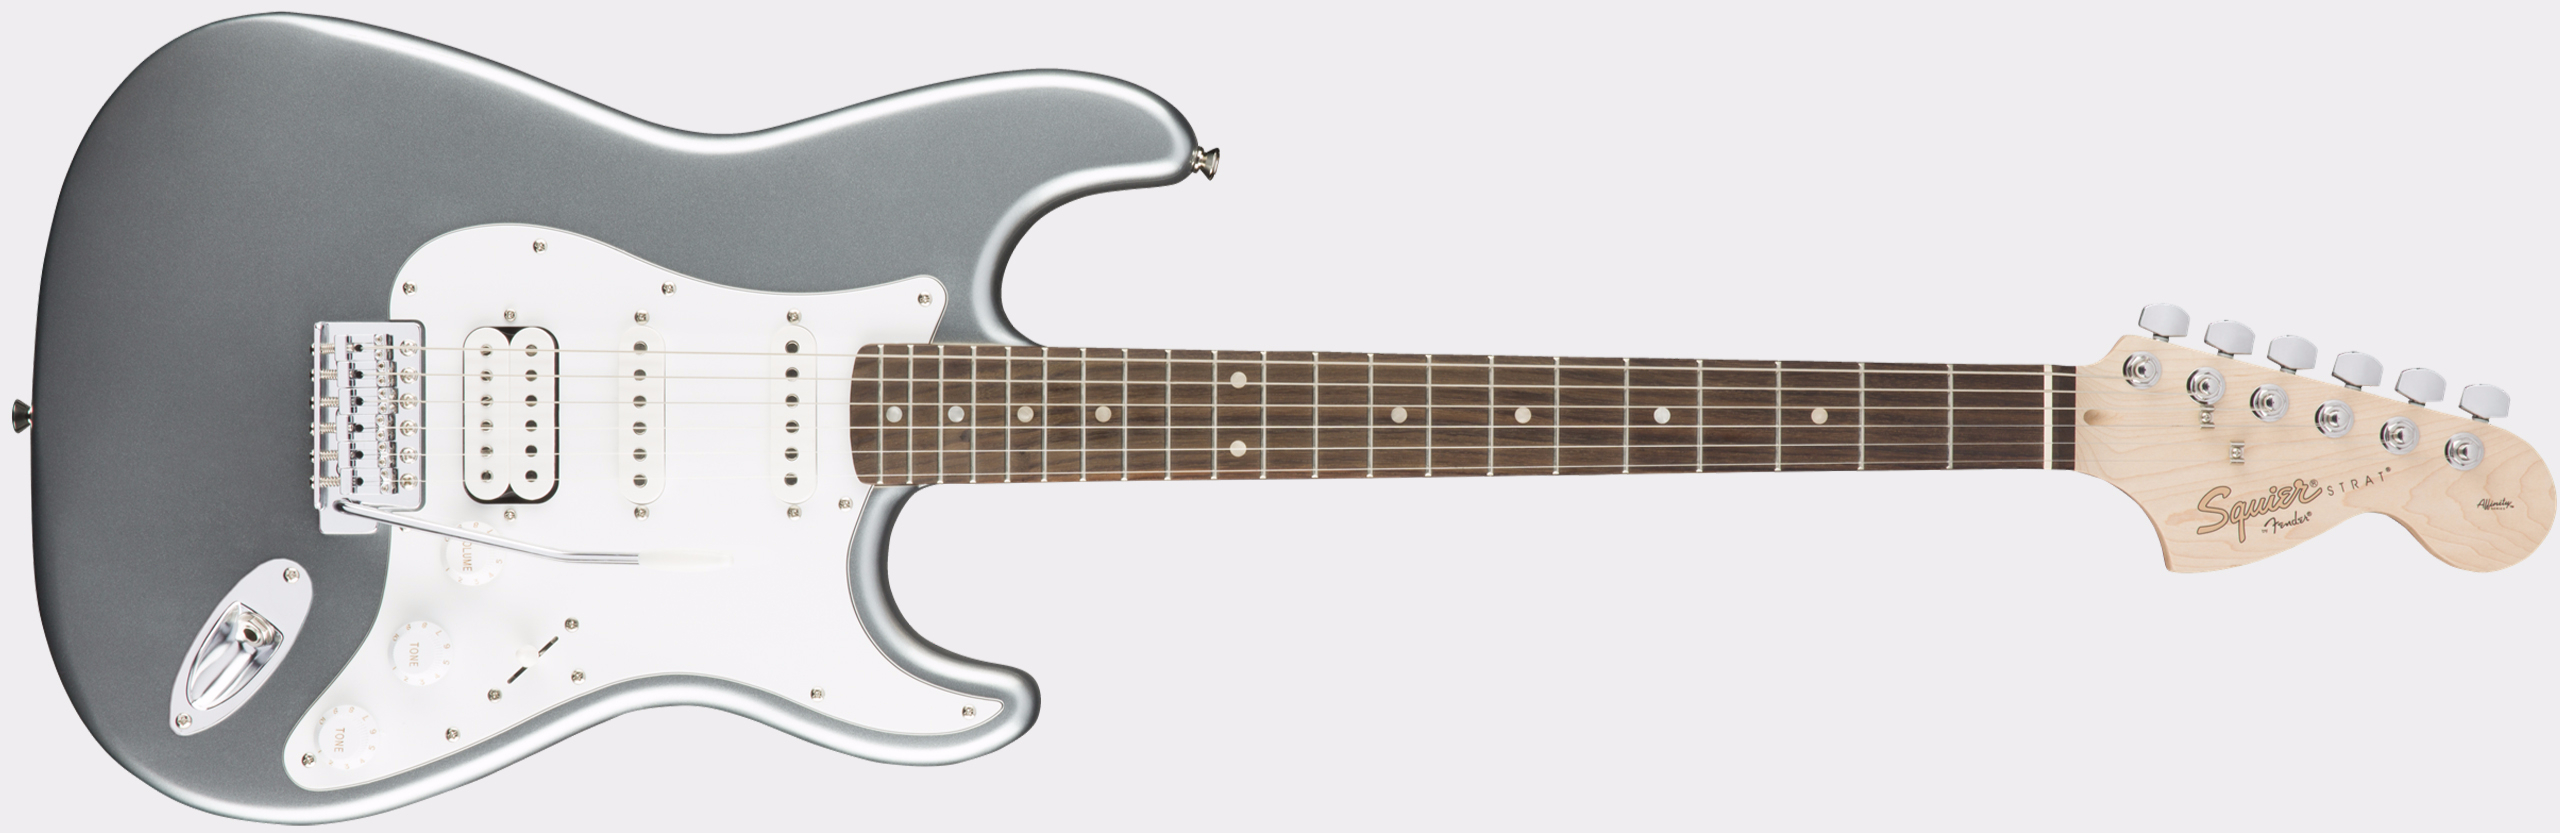 SQUIER Affinity Series Stratocaster HSS RW Slick Silver